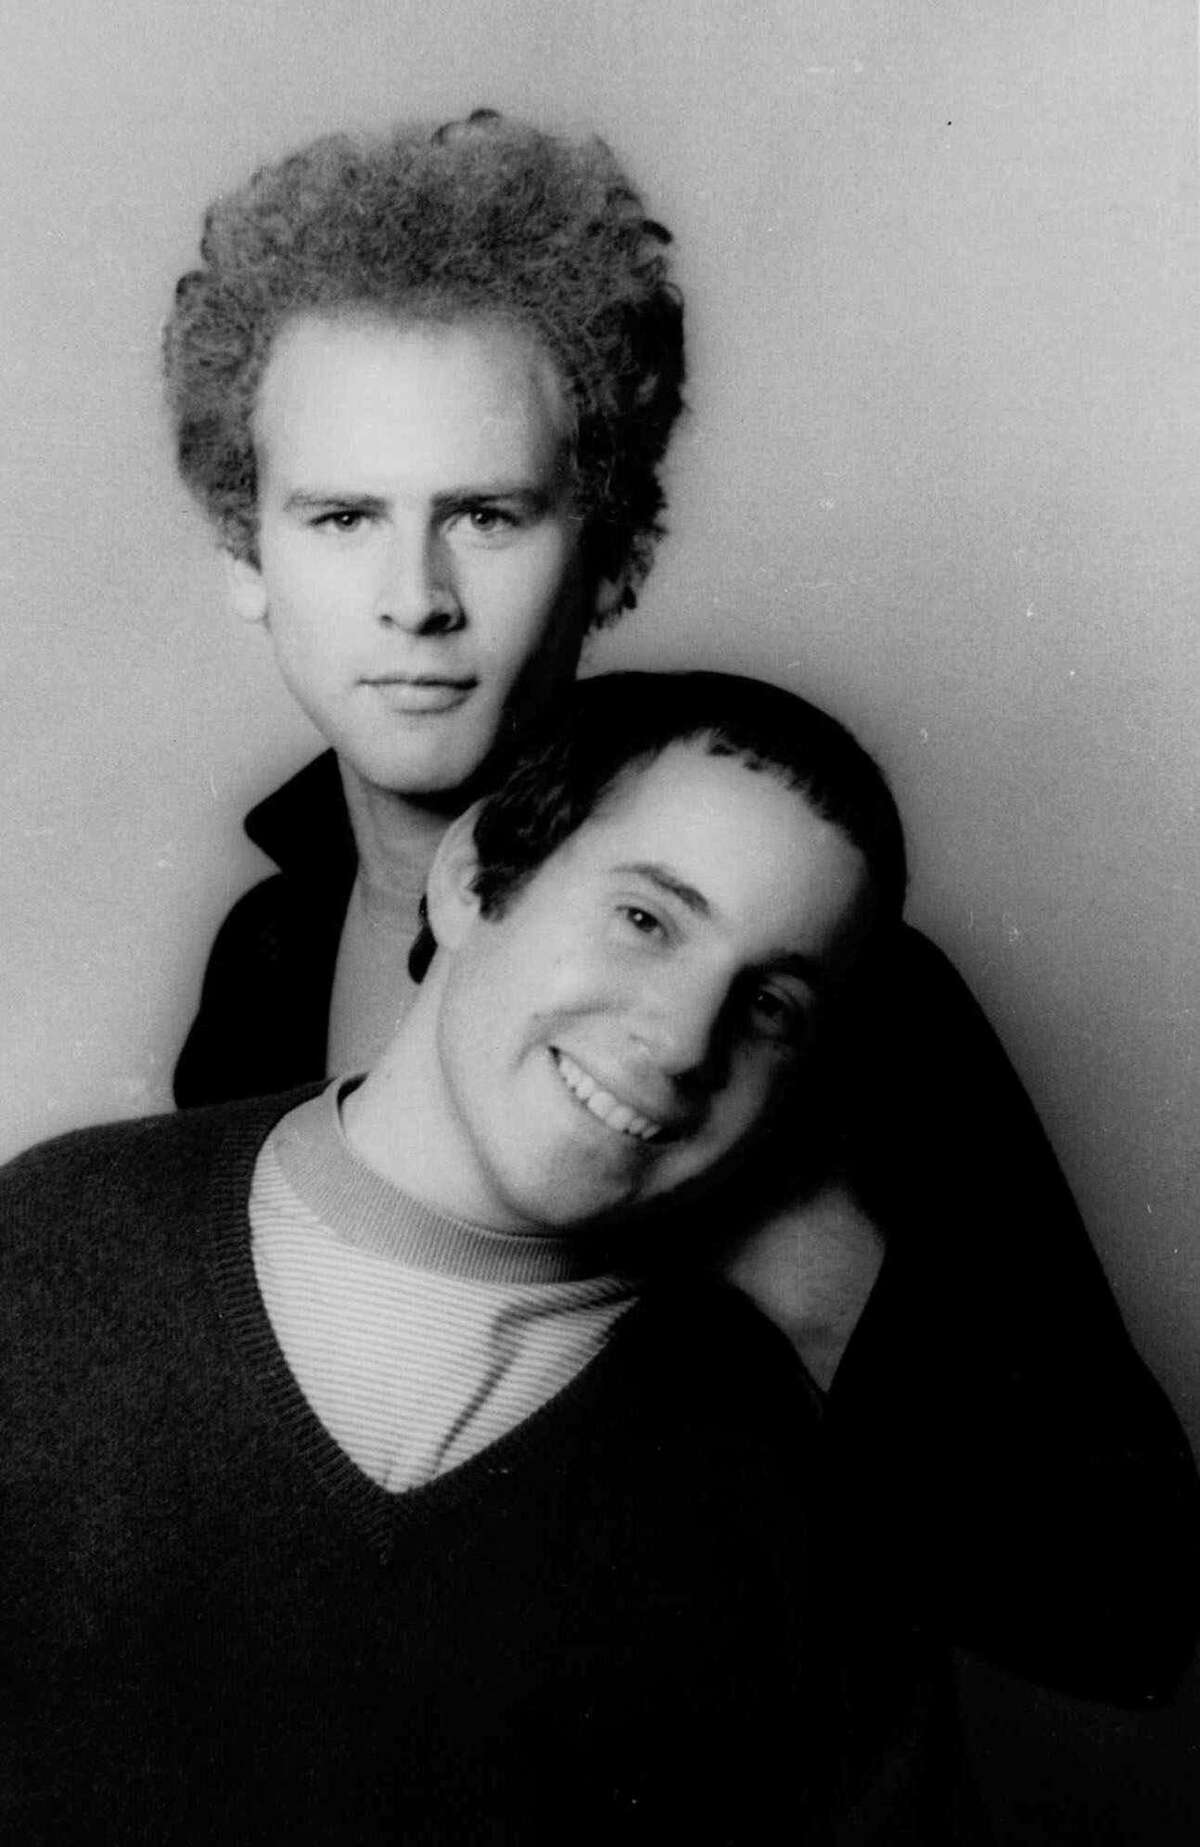 Art Garfunkel The curlier half of Simon and Garfunkel was well on his way to a doctorate in mathematics from Columbia when the whole singing thing took off.